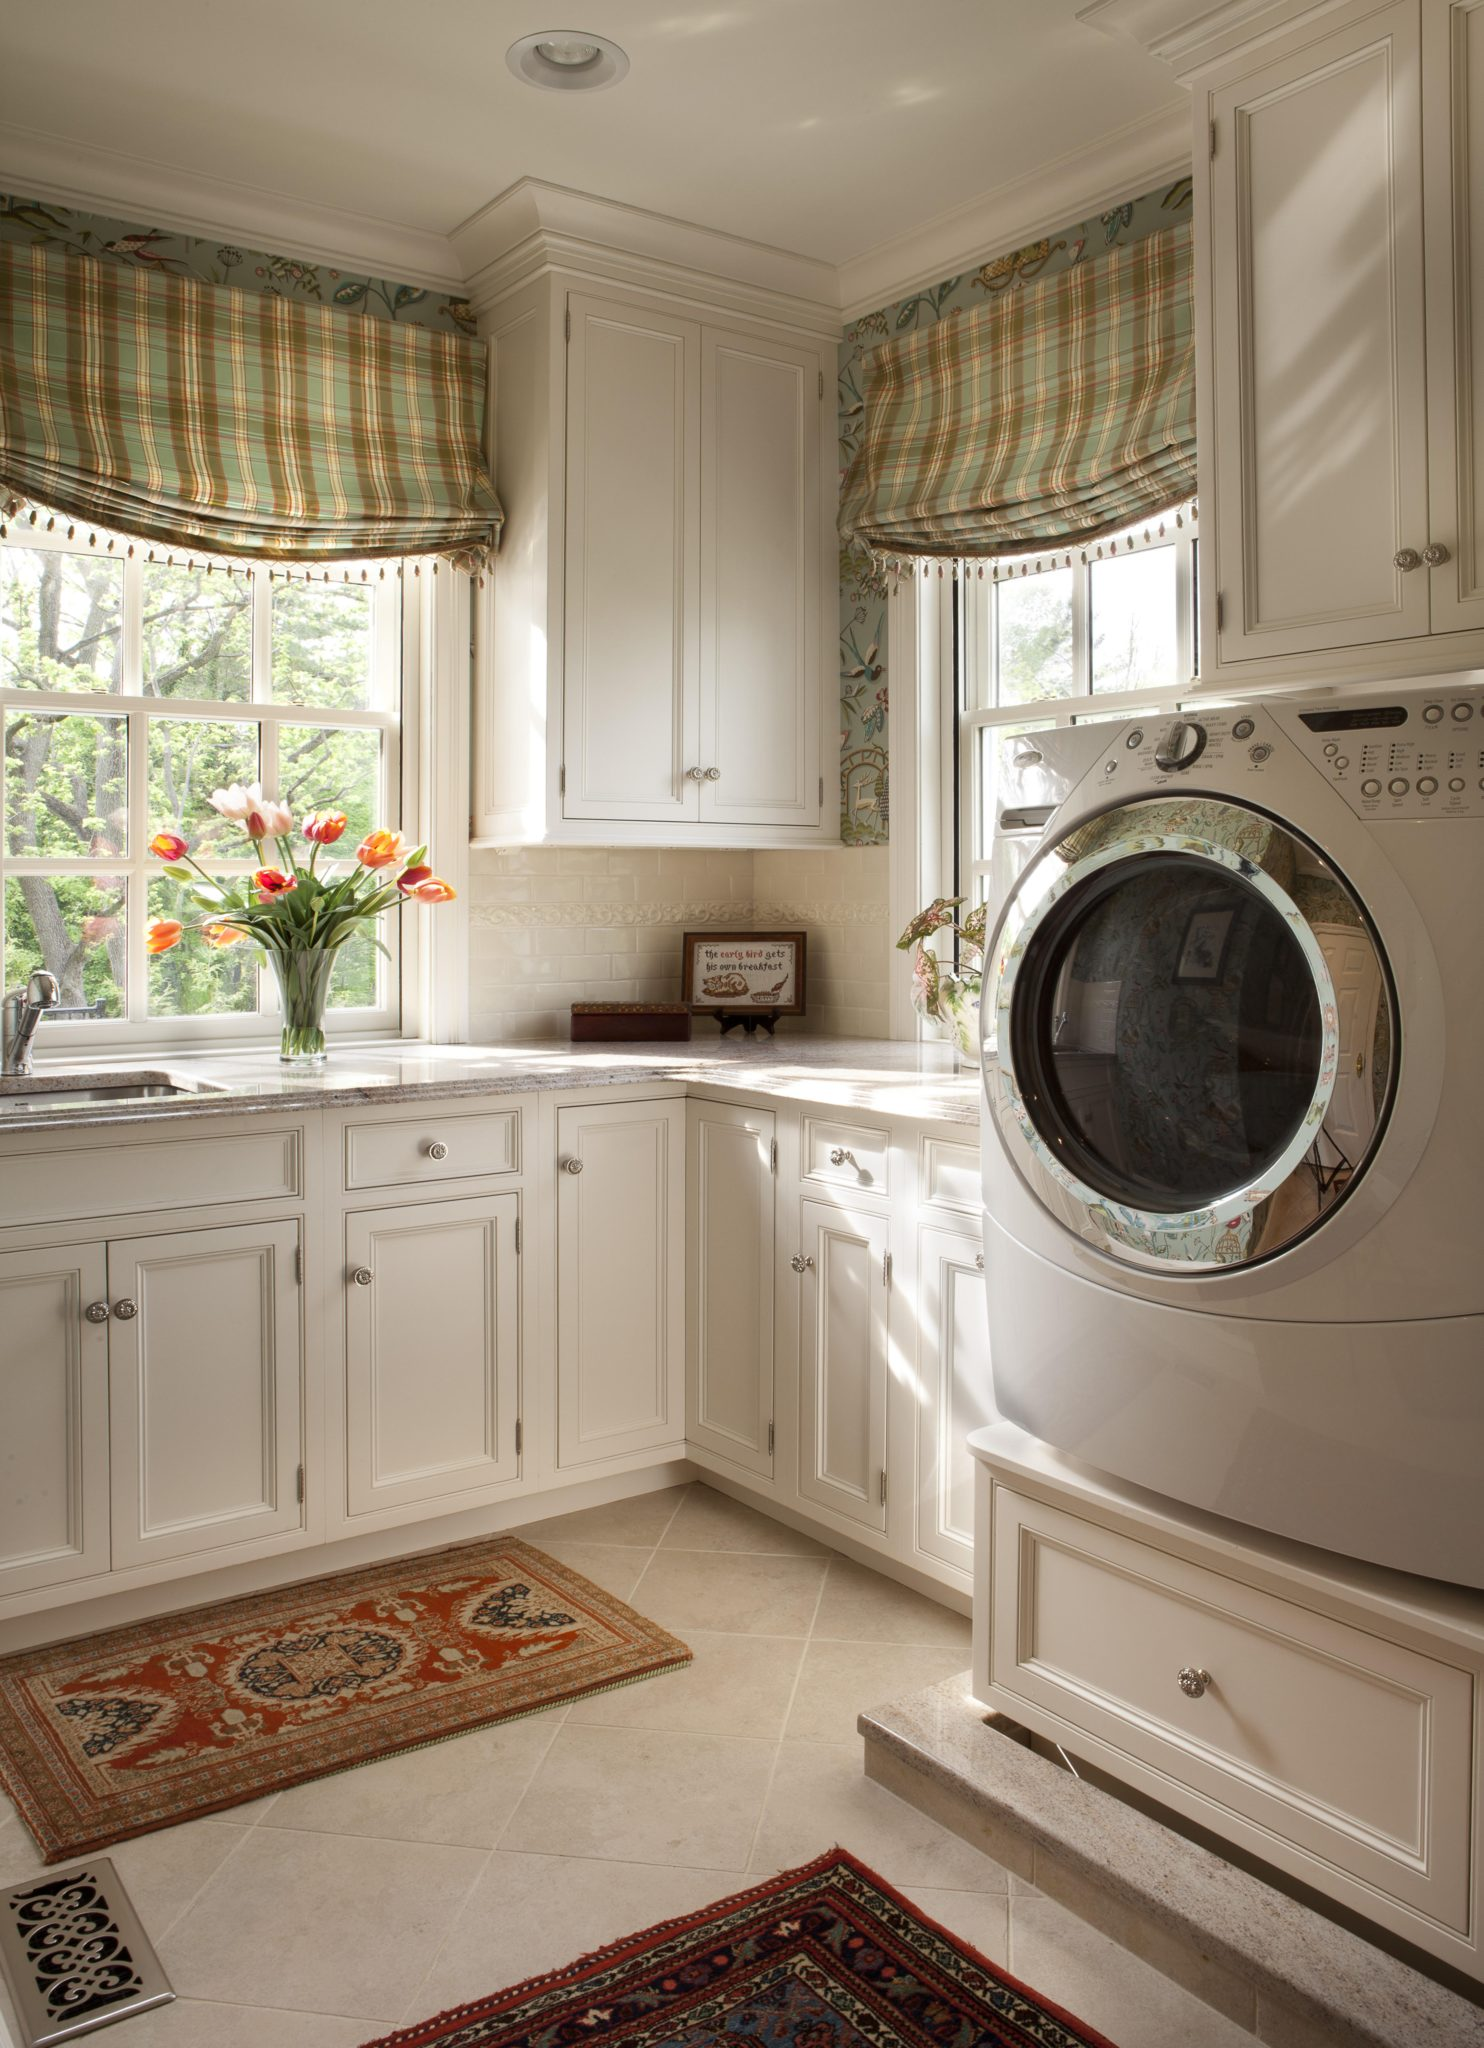 Laundry Room with Custom Cabinetry by Diane Burgoyne Interiors by Diane Burgoyne Interiors